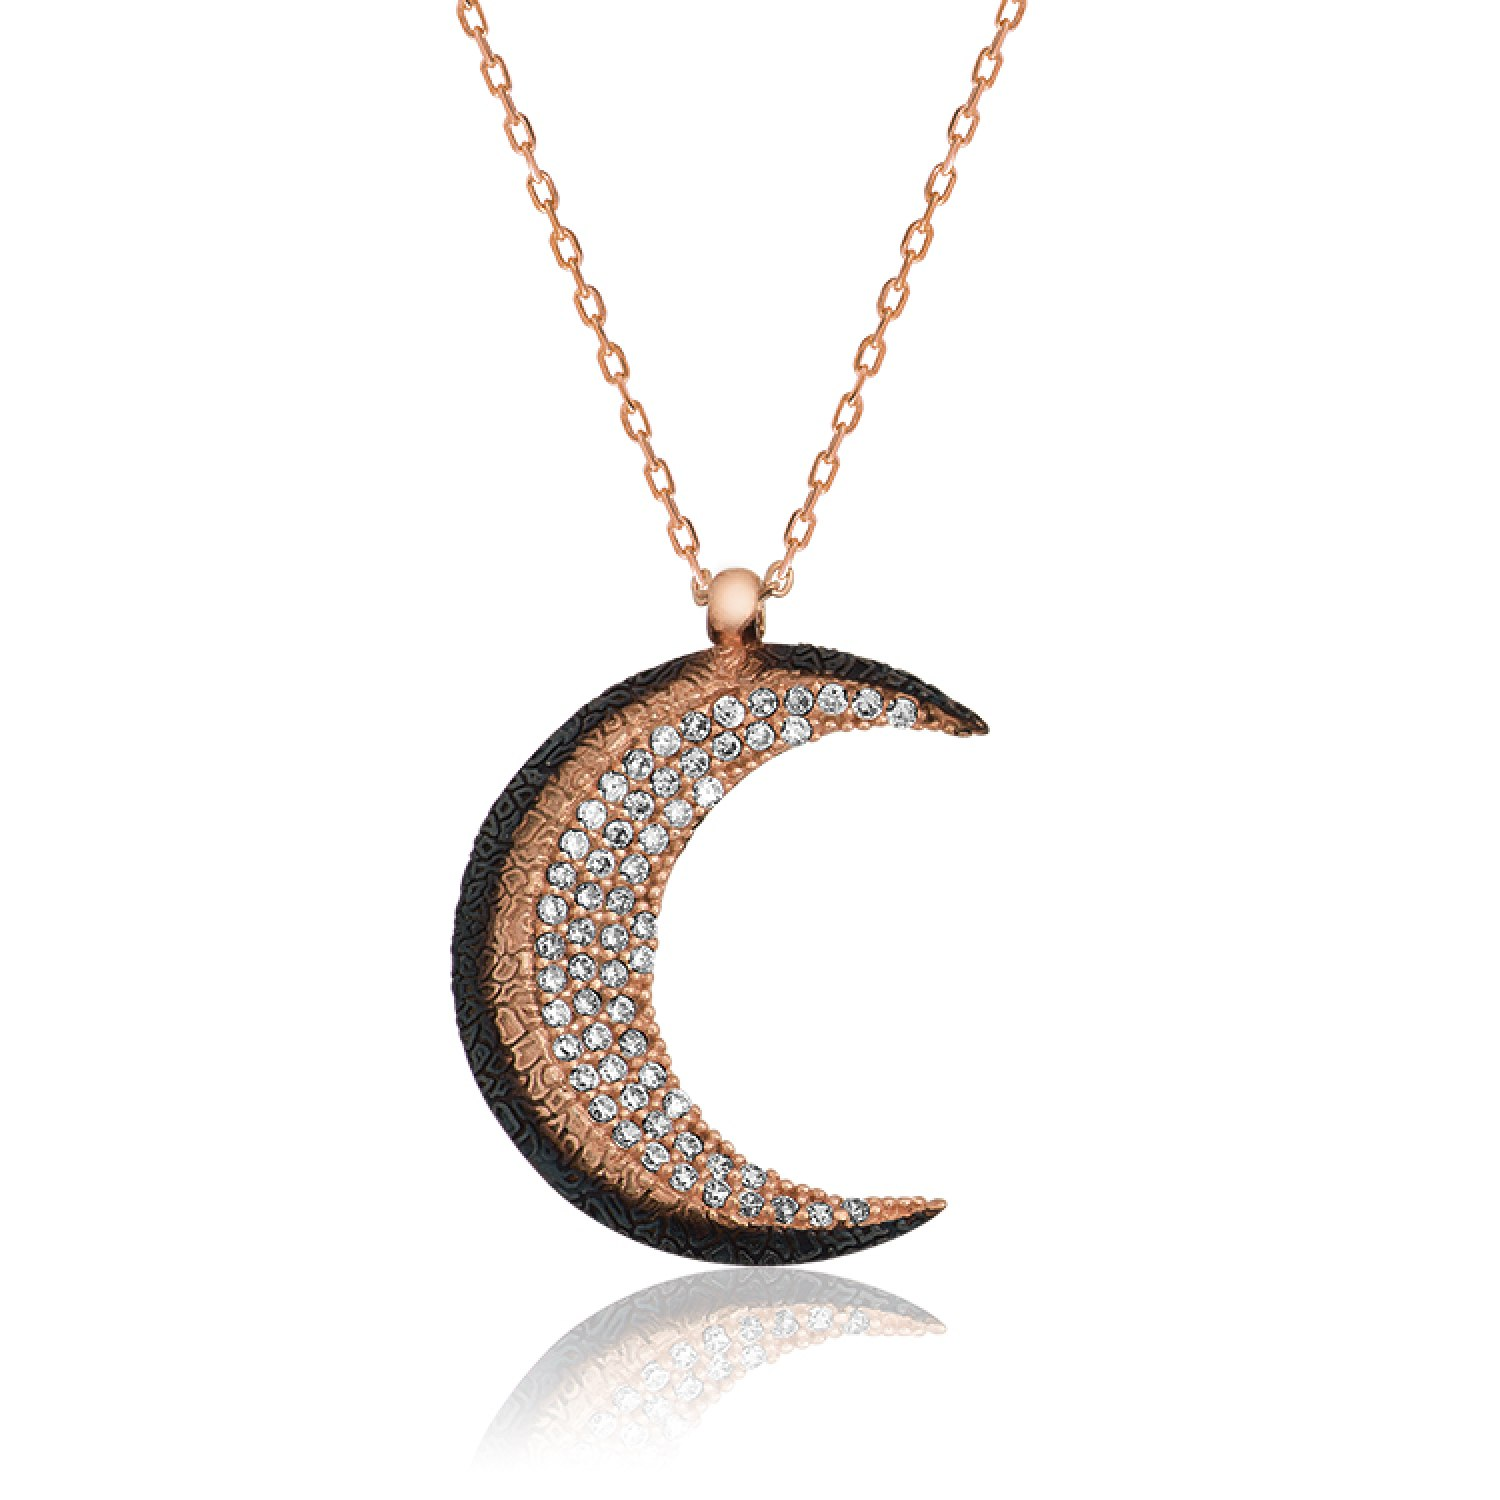 Crescent silver ladies necklace islamic jewelry storeislamic crescent silver ladies necklace ij1 1843 islamic jewelry aloadofball Images